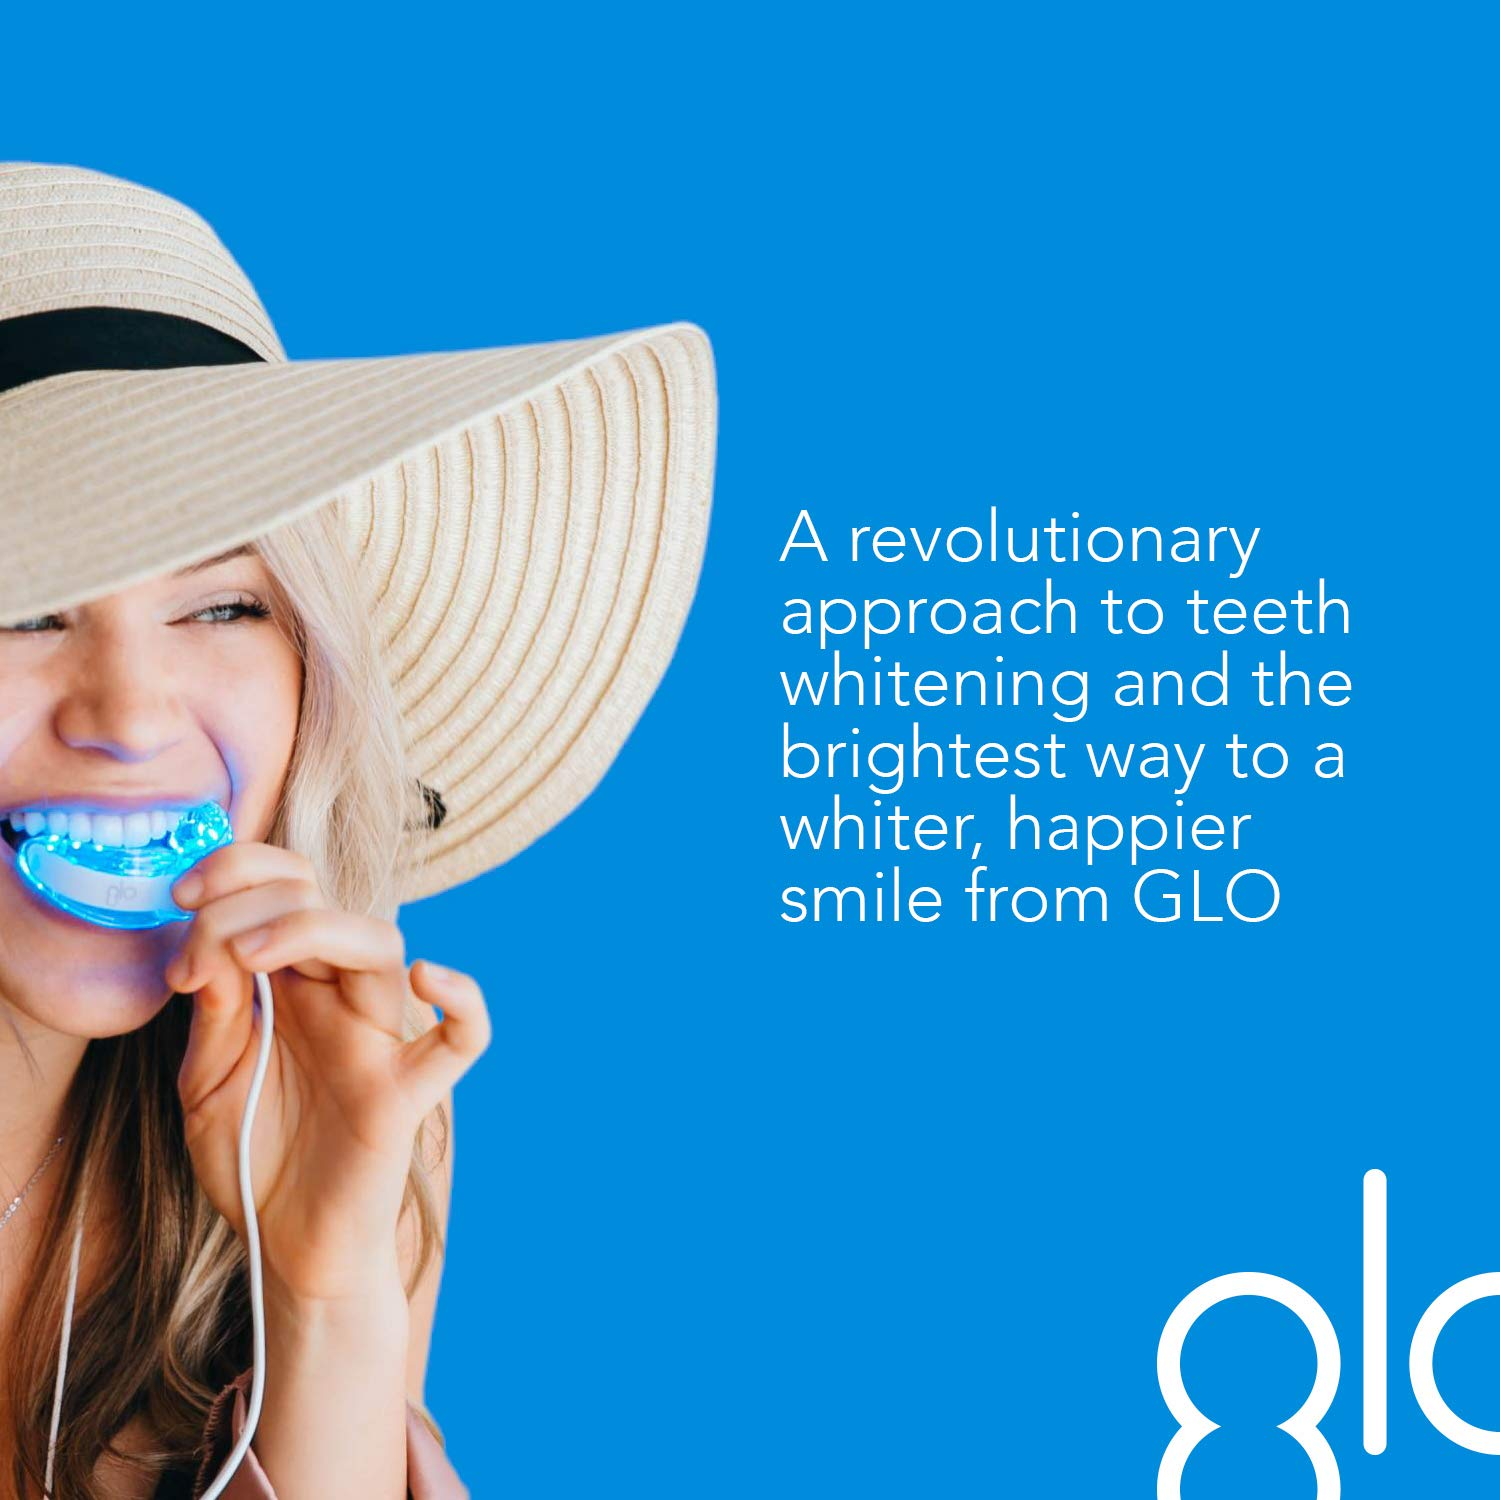 GLO Brilliant Deluxe Teeth Whitening Device Kit with Patented Blue LED Light & Heat Accelerator for Fast, Pain-Free, Long Lasting Results. Clinically Proven. Includes 10 GLO Gel Vials+ Lip Care, WHITE by GLO Science (Image #3)